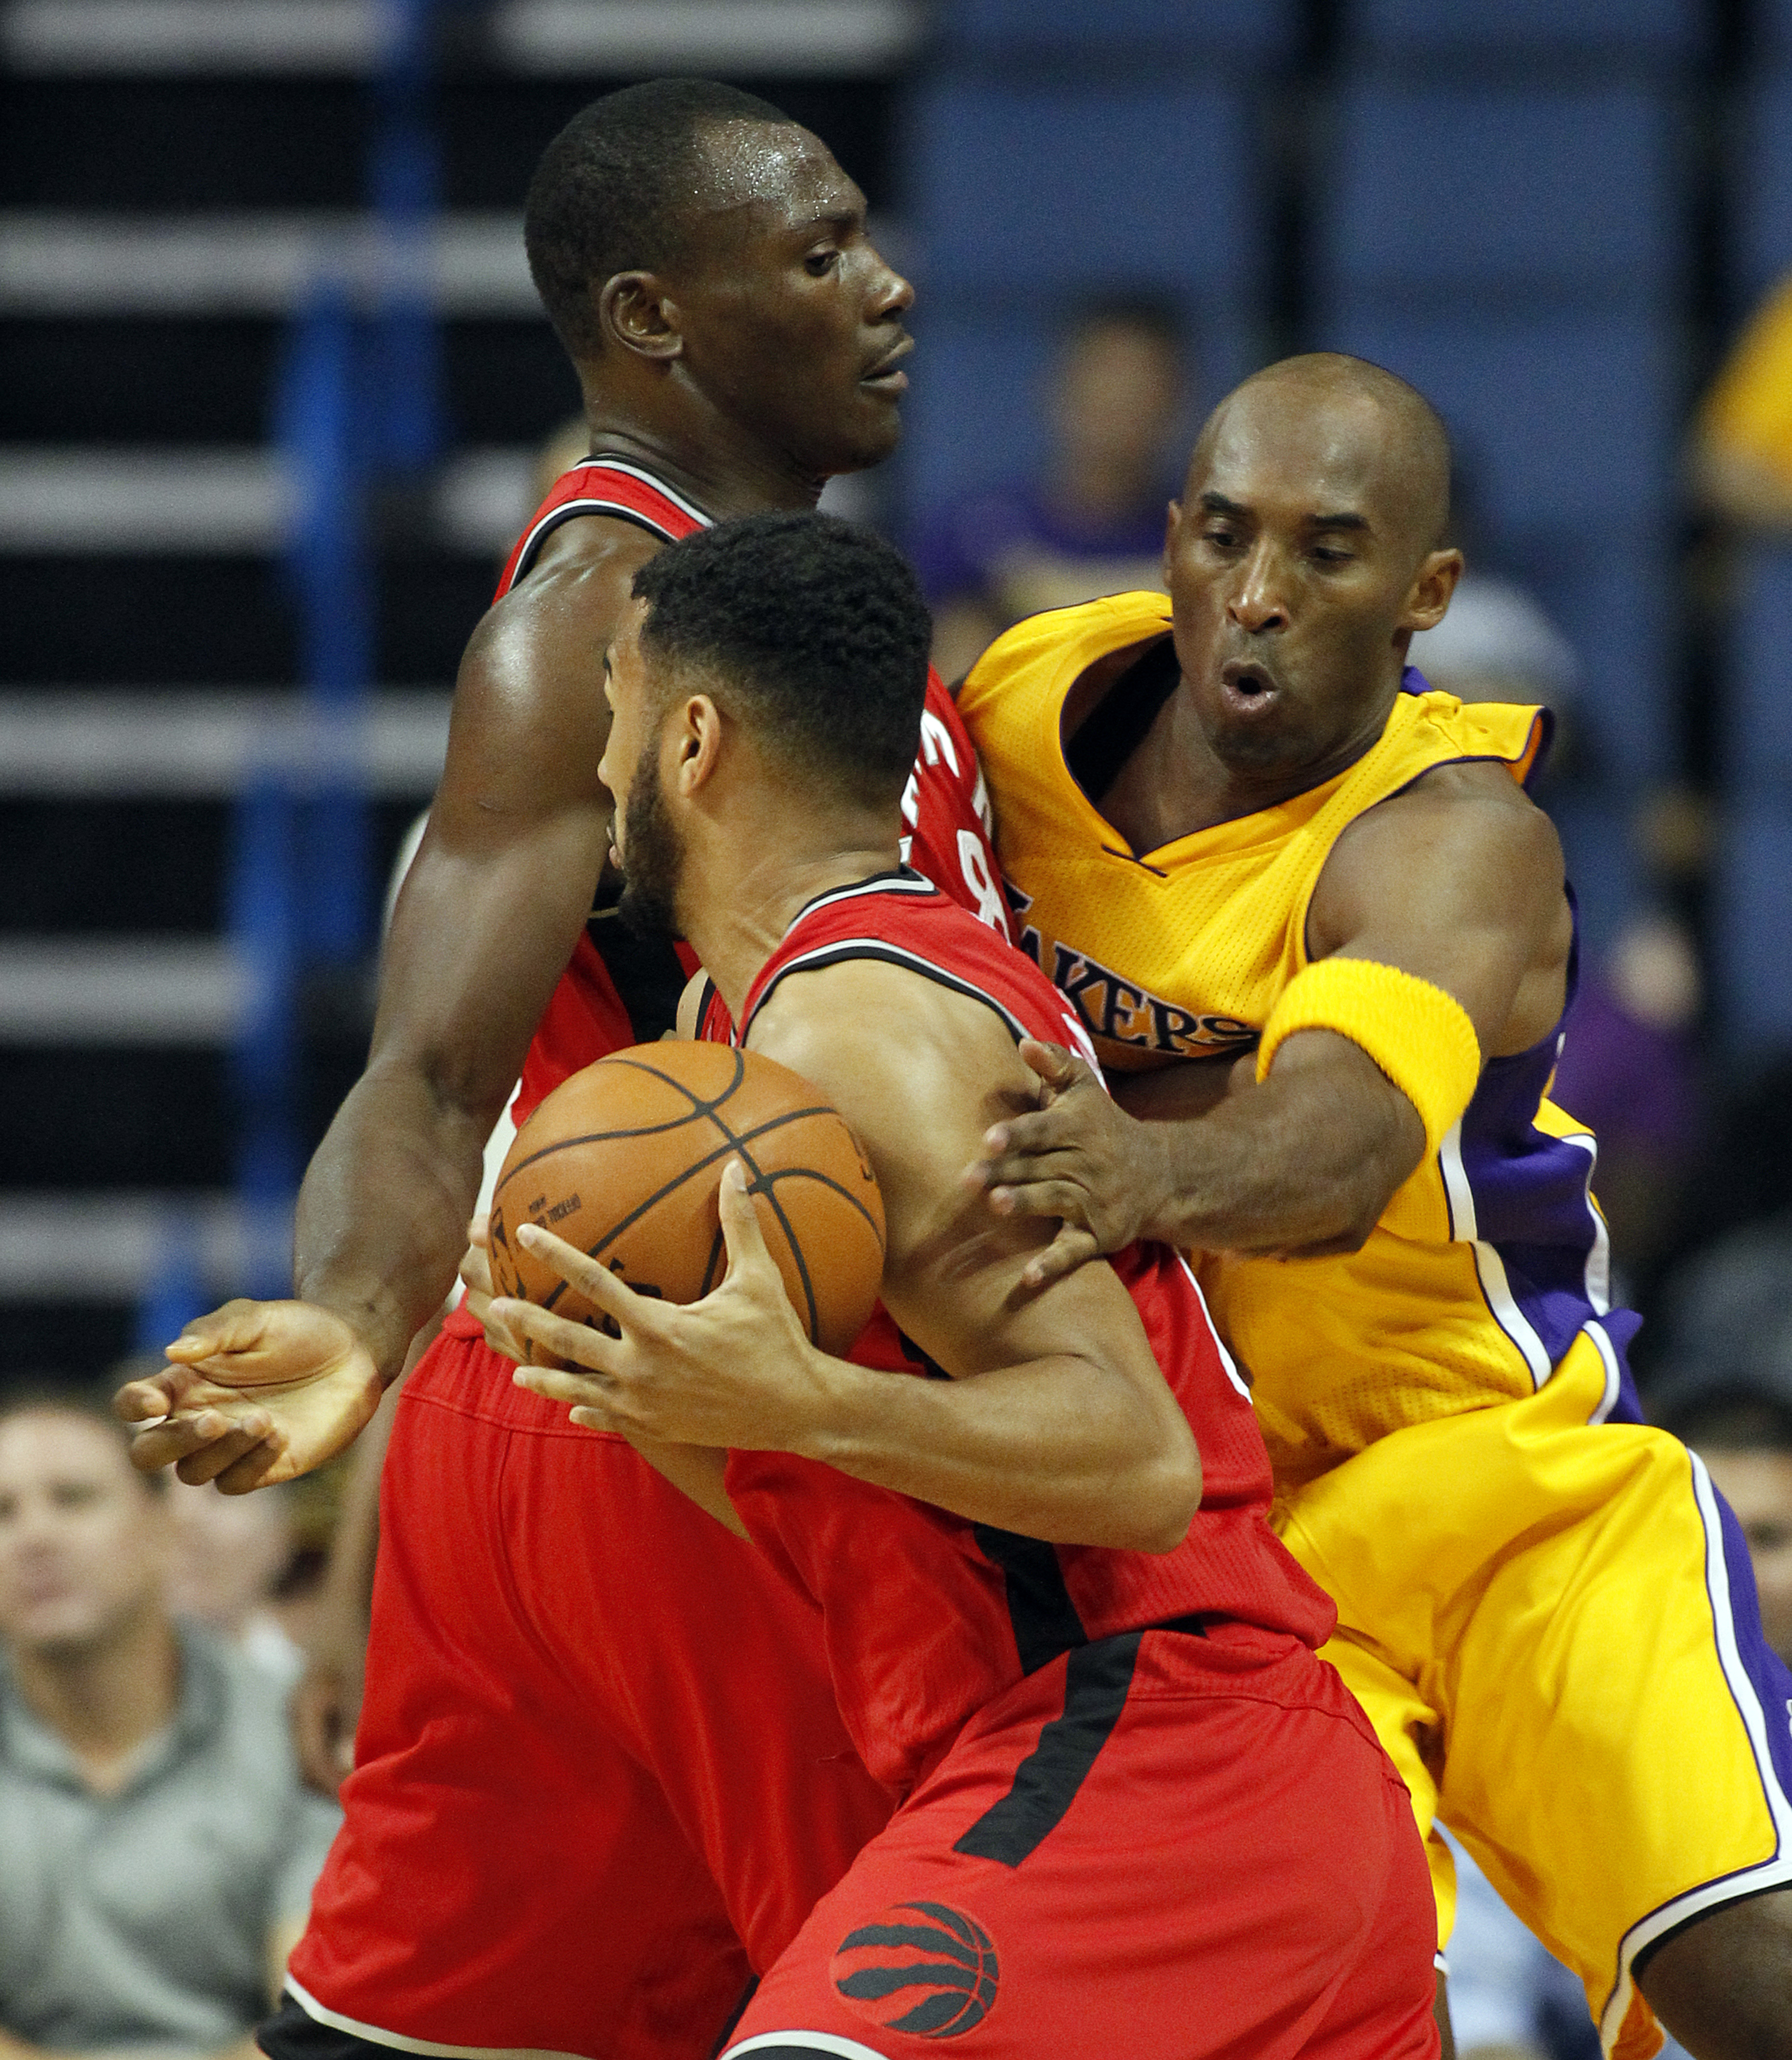 Toronto Raptors guard Cory Joseph, center, gets around a pick set by forward Bismack Biyombo, with Los Angeles Lakers guard Kobe Bryant, right, defending during the first half of an NBA preseason basketball game in Ontario, Calif., Thursday, Oct. 8, 2015.